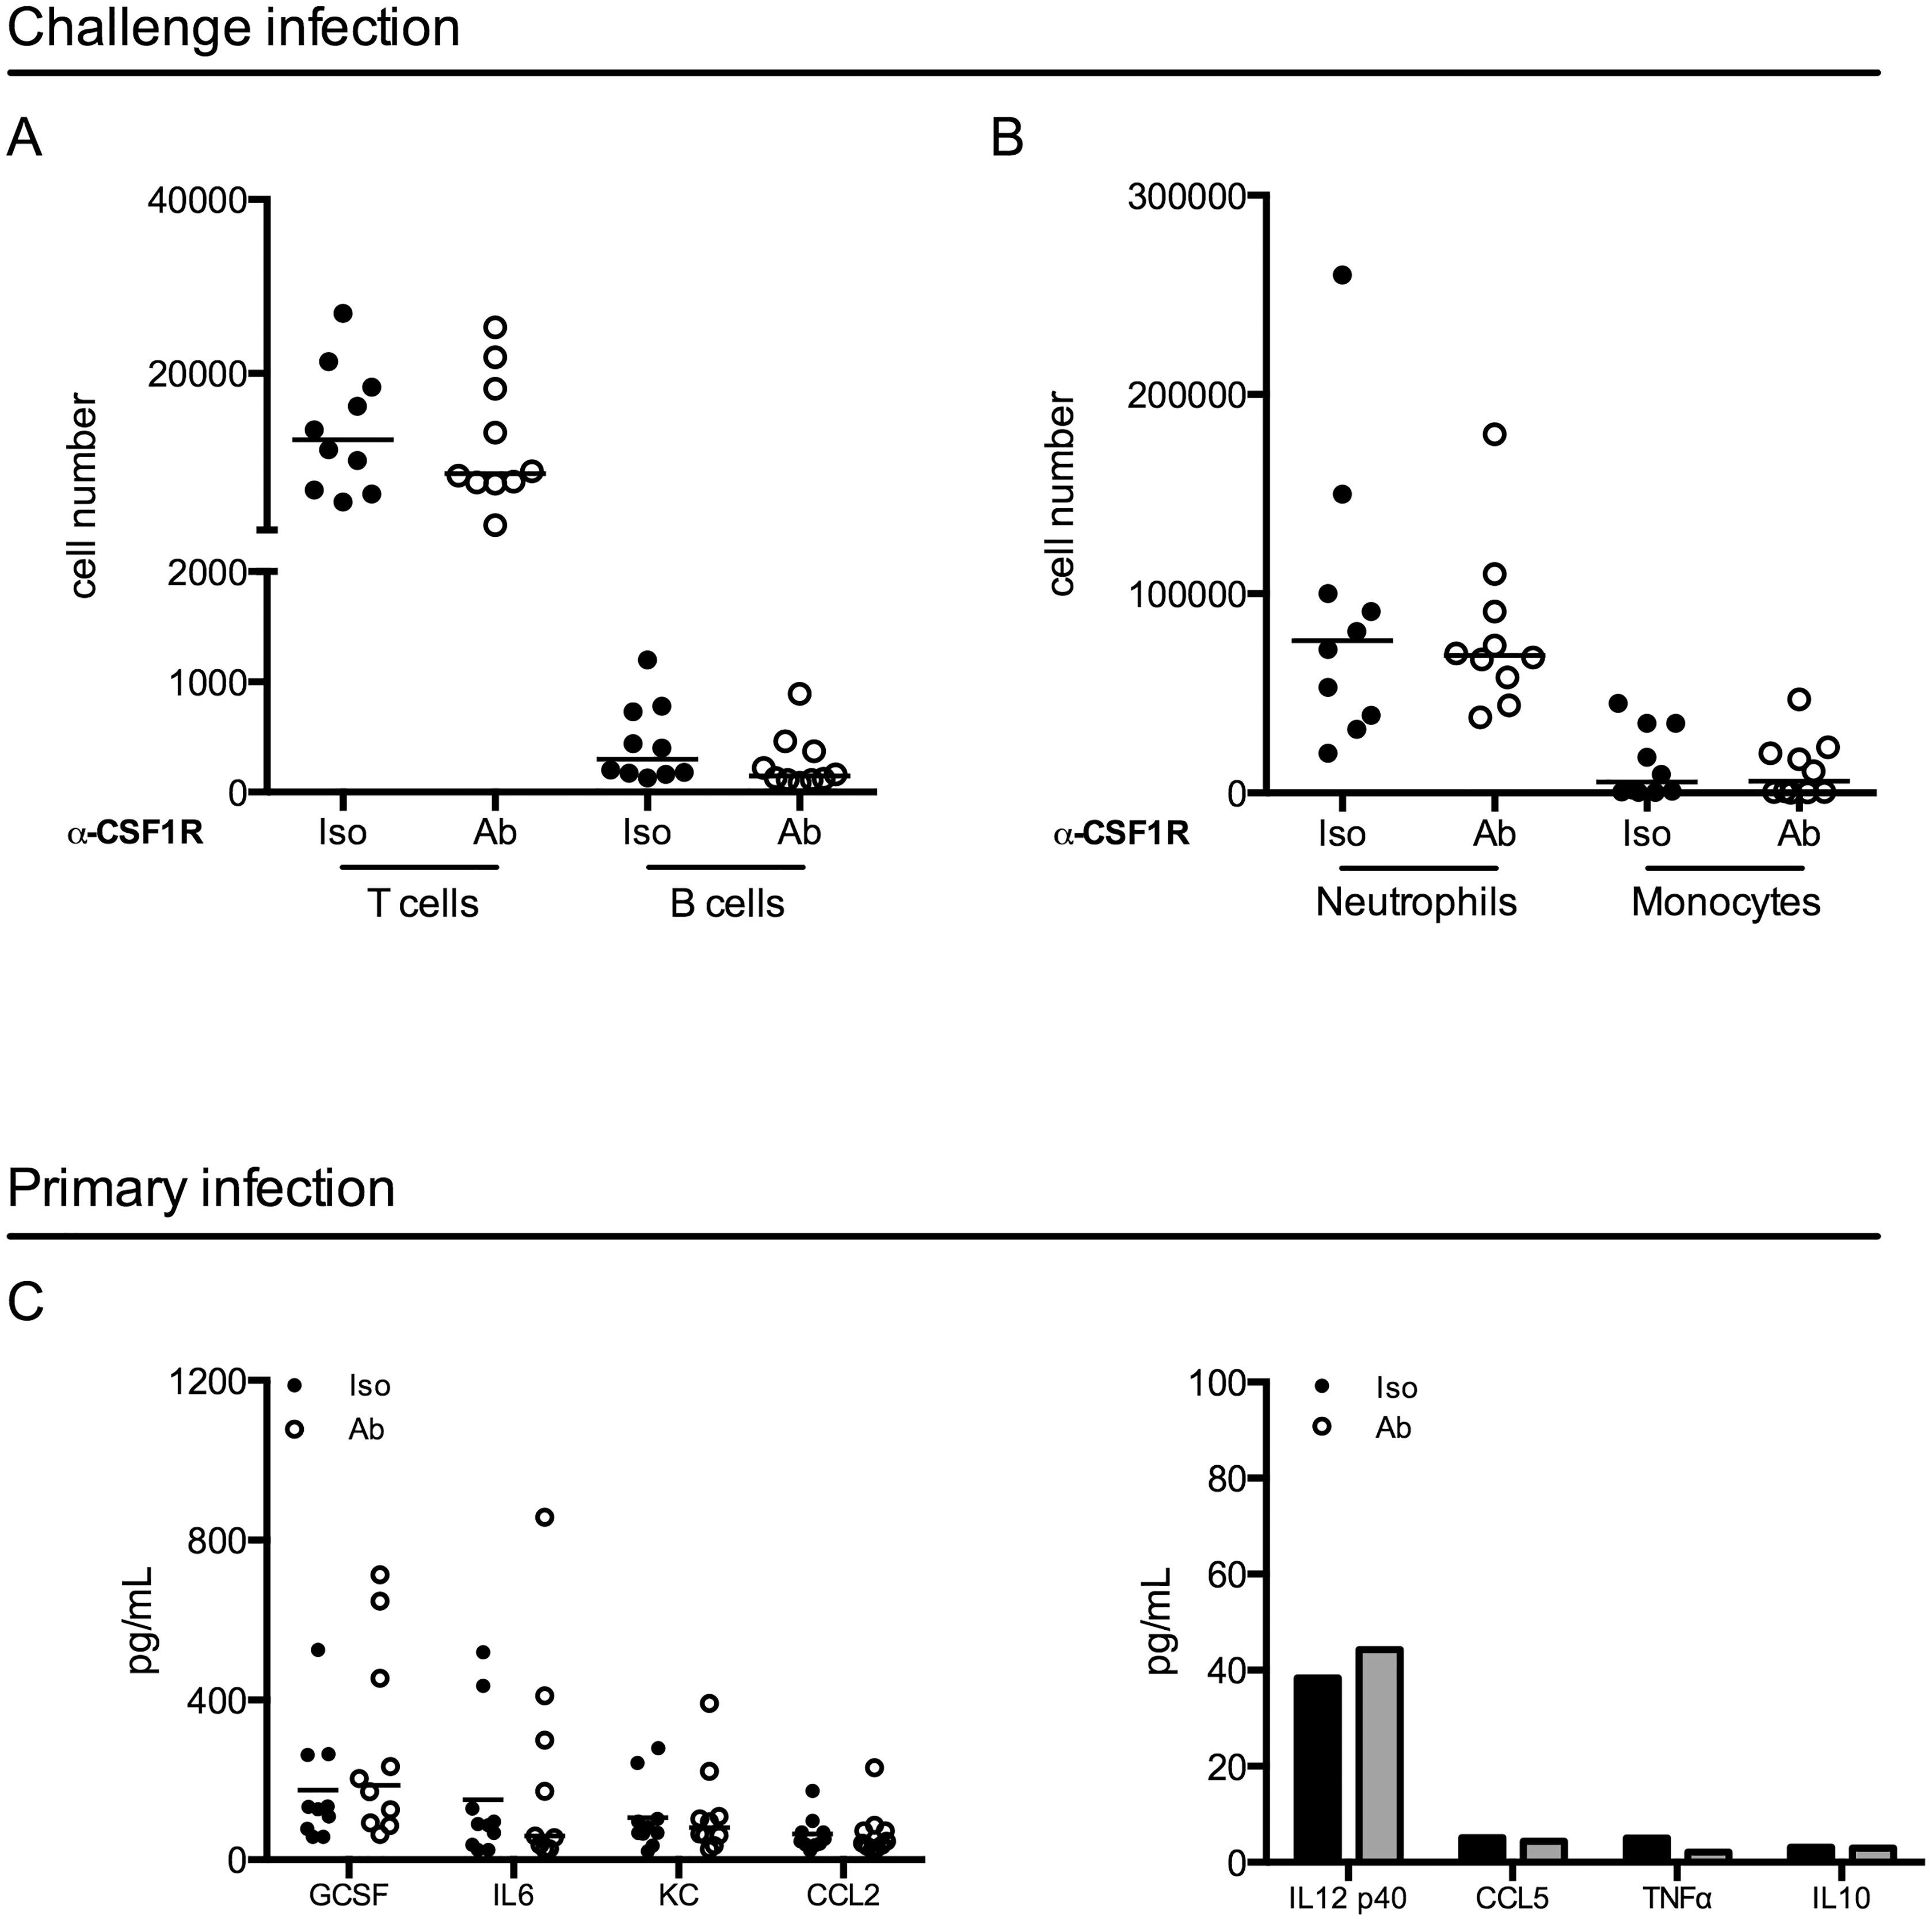 Macrophage depletion does not impact effector cell infiltration or cytokine expression.